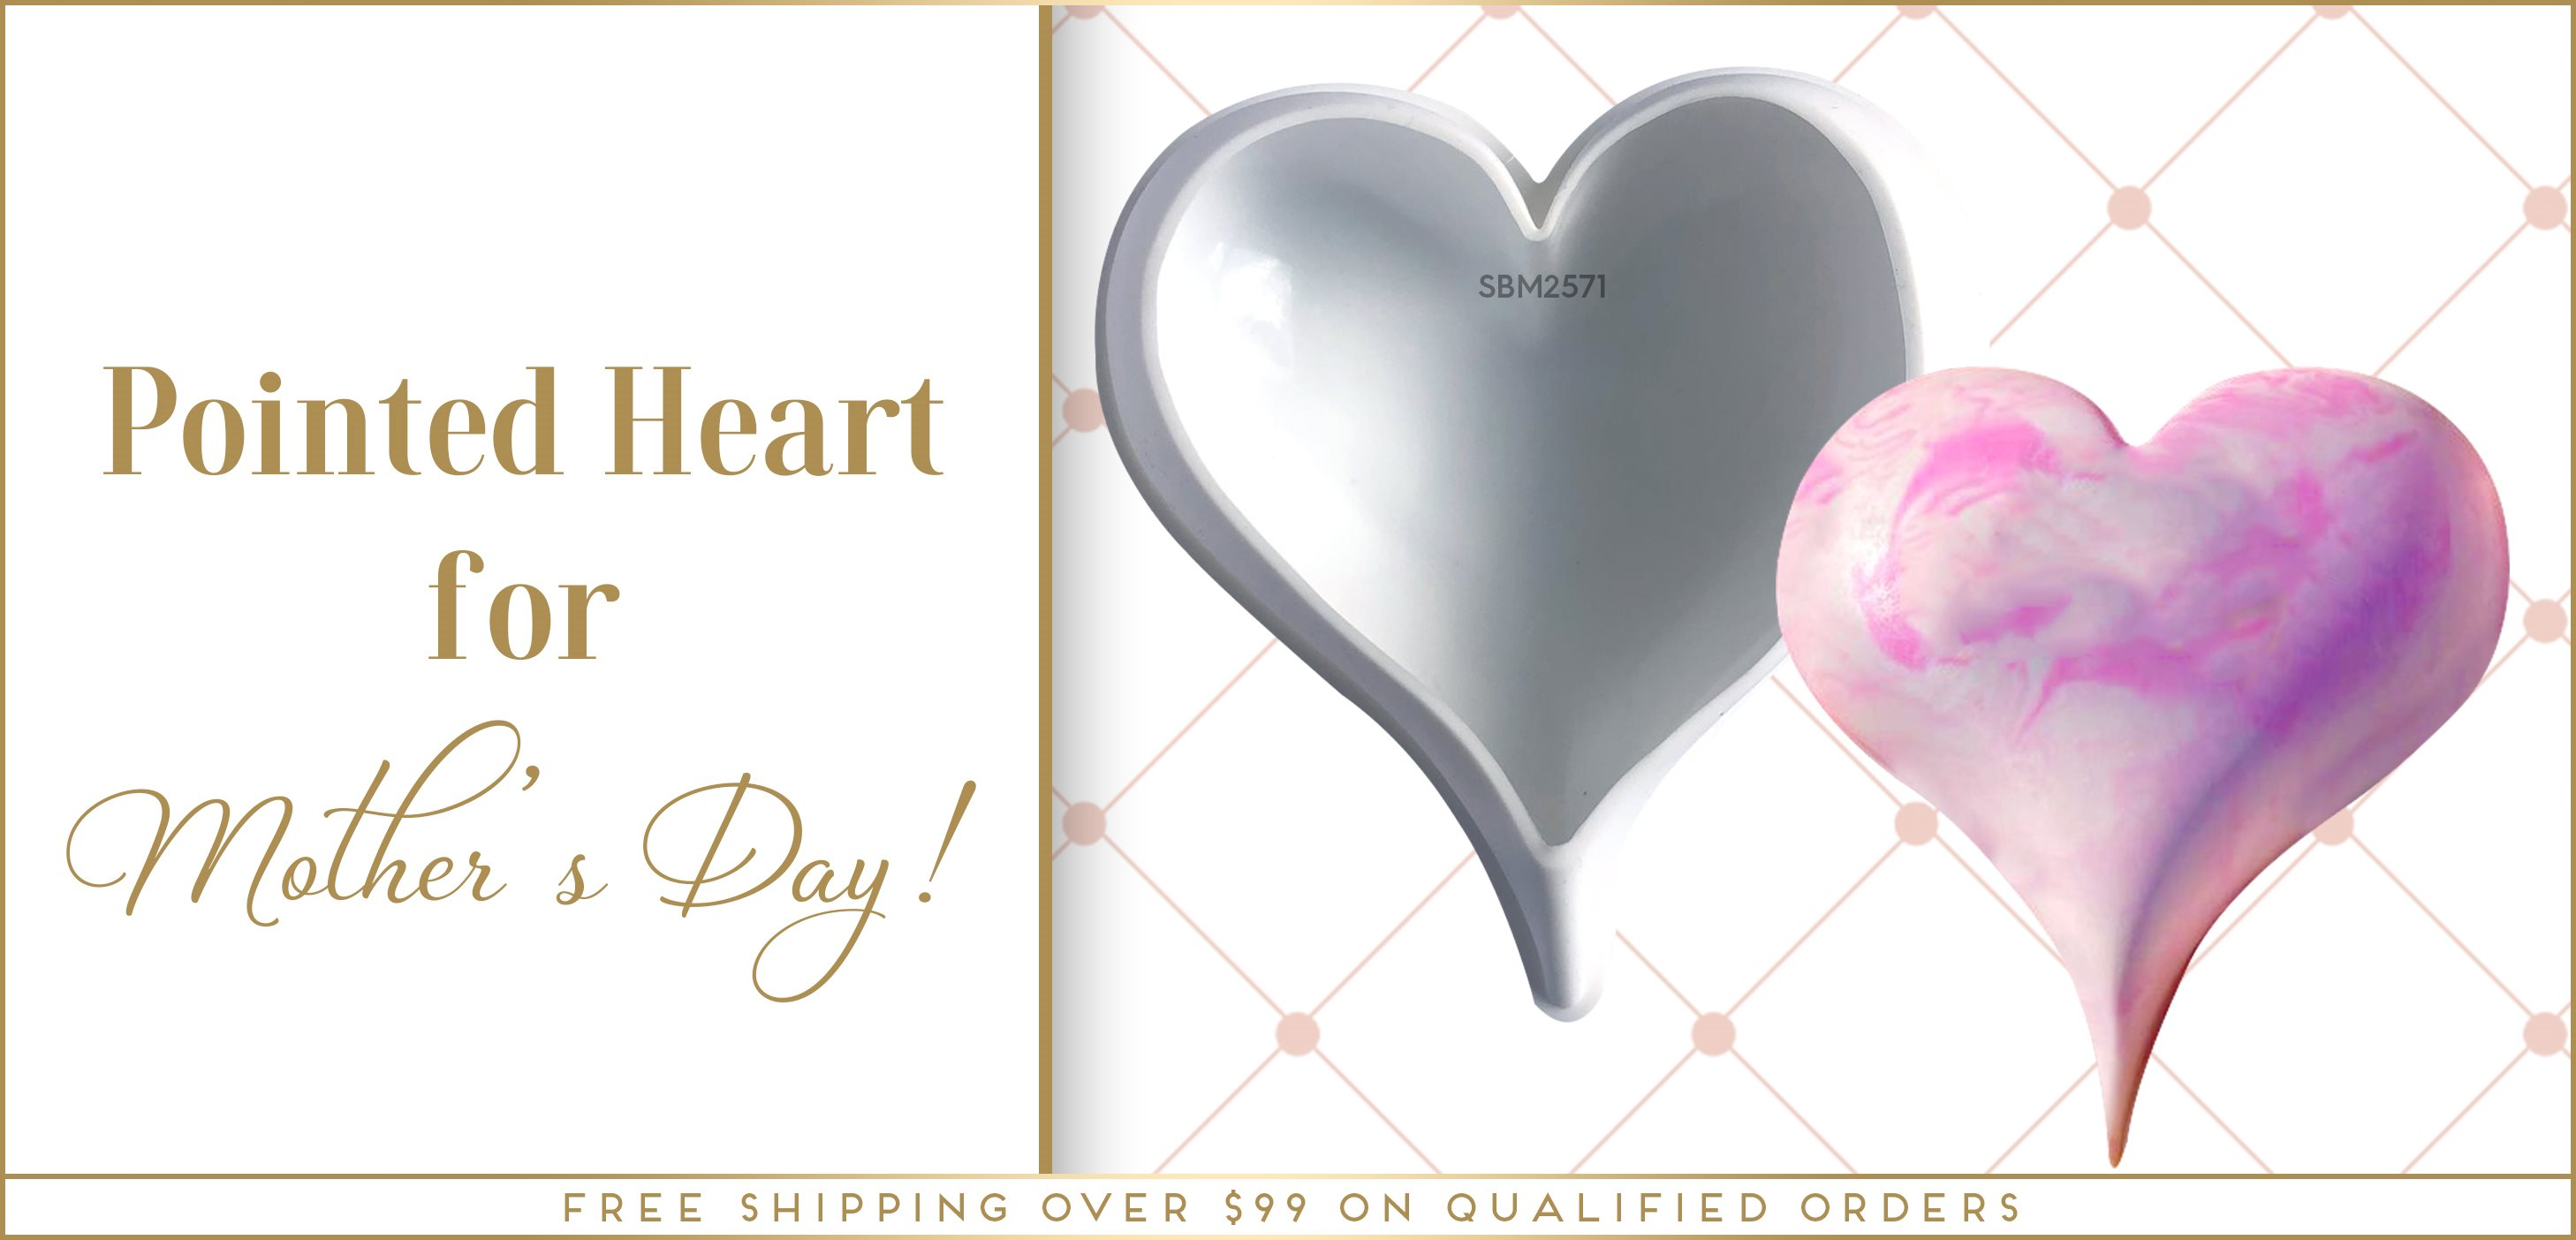 Mother's Day Baking Pointed Heart Silicone Mold